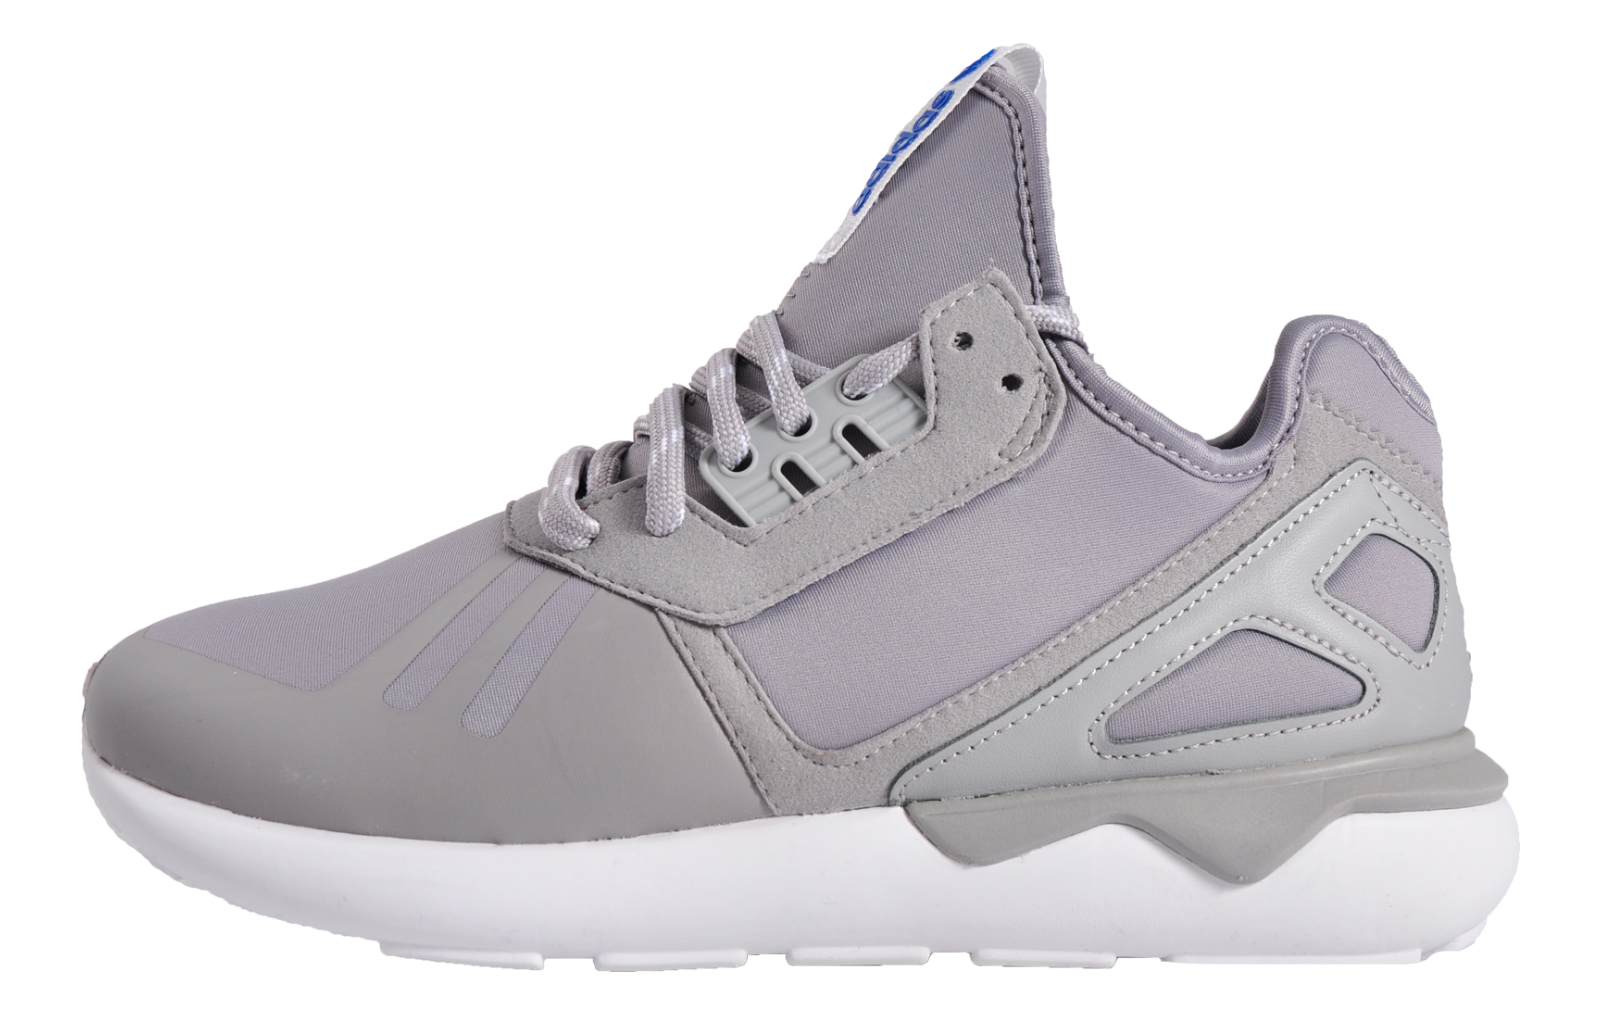 Adidas Originals Tubular Runner Mens  - AD188425